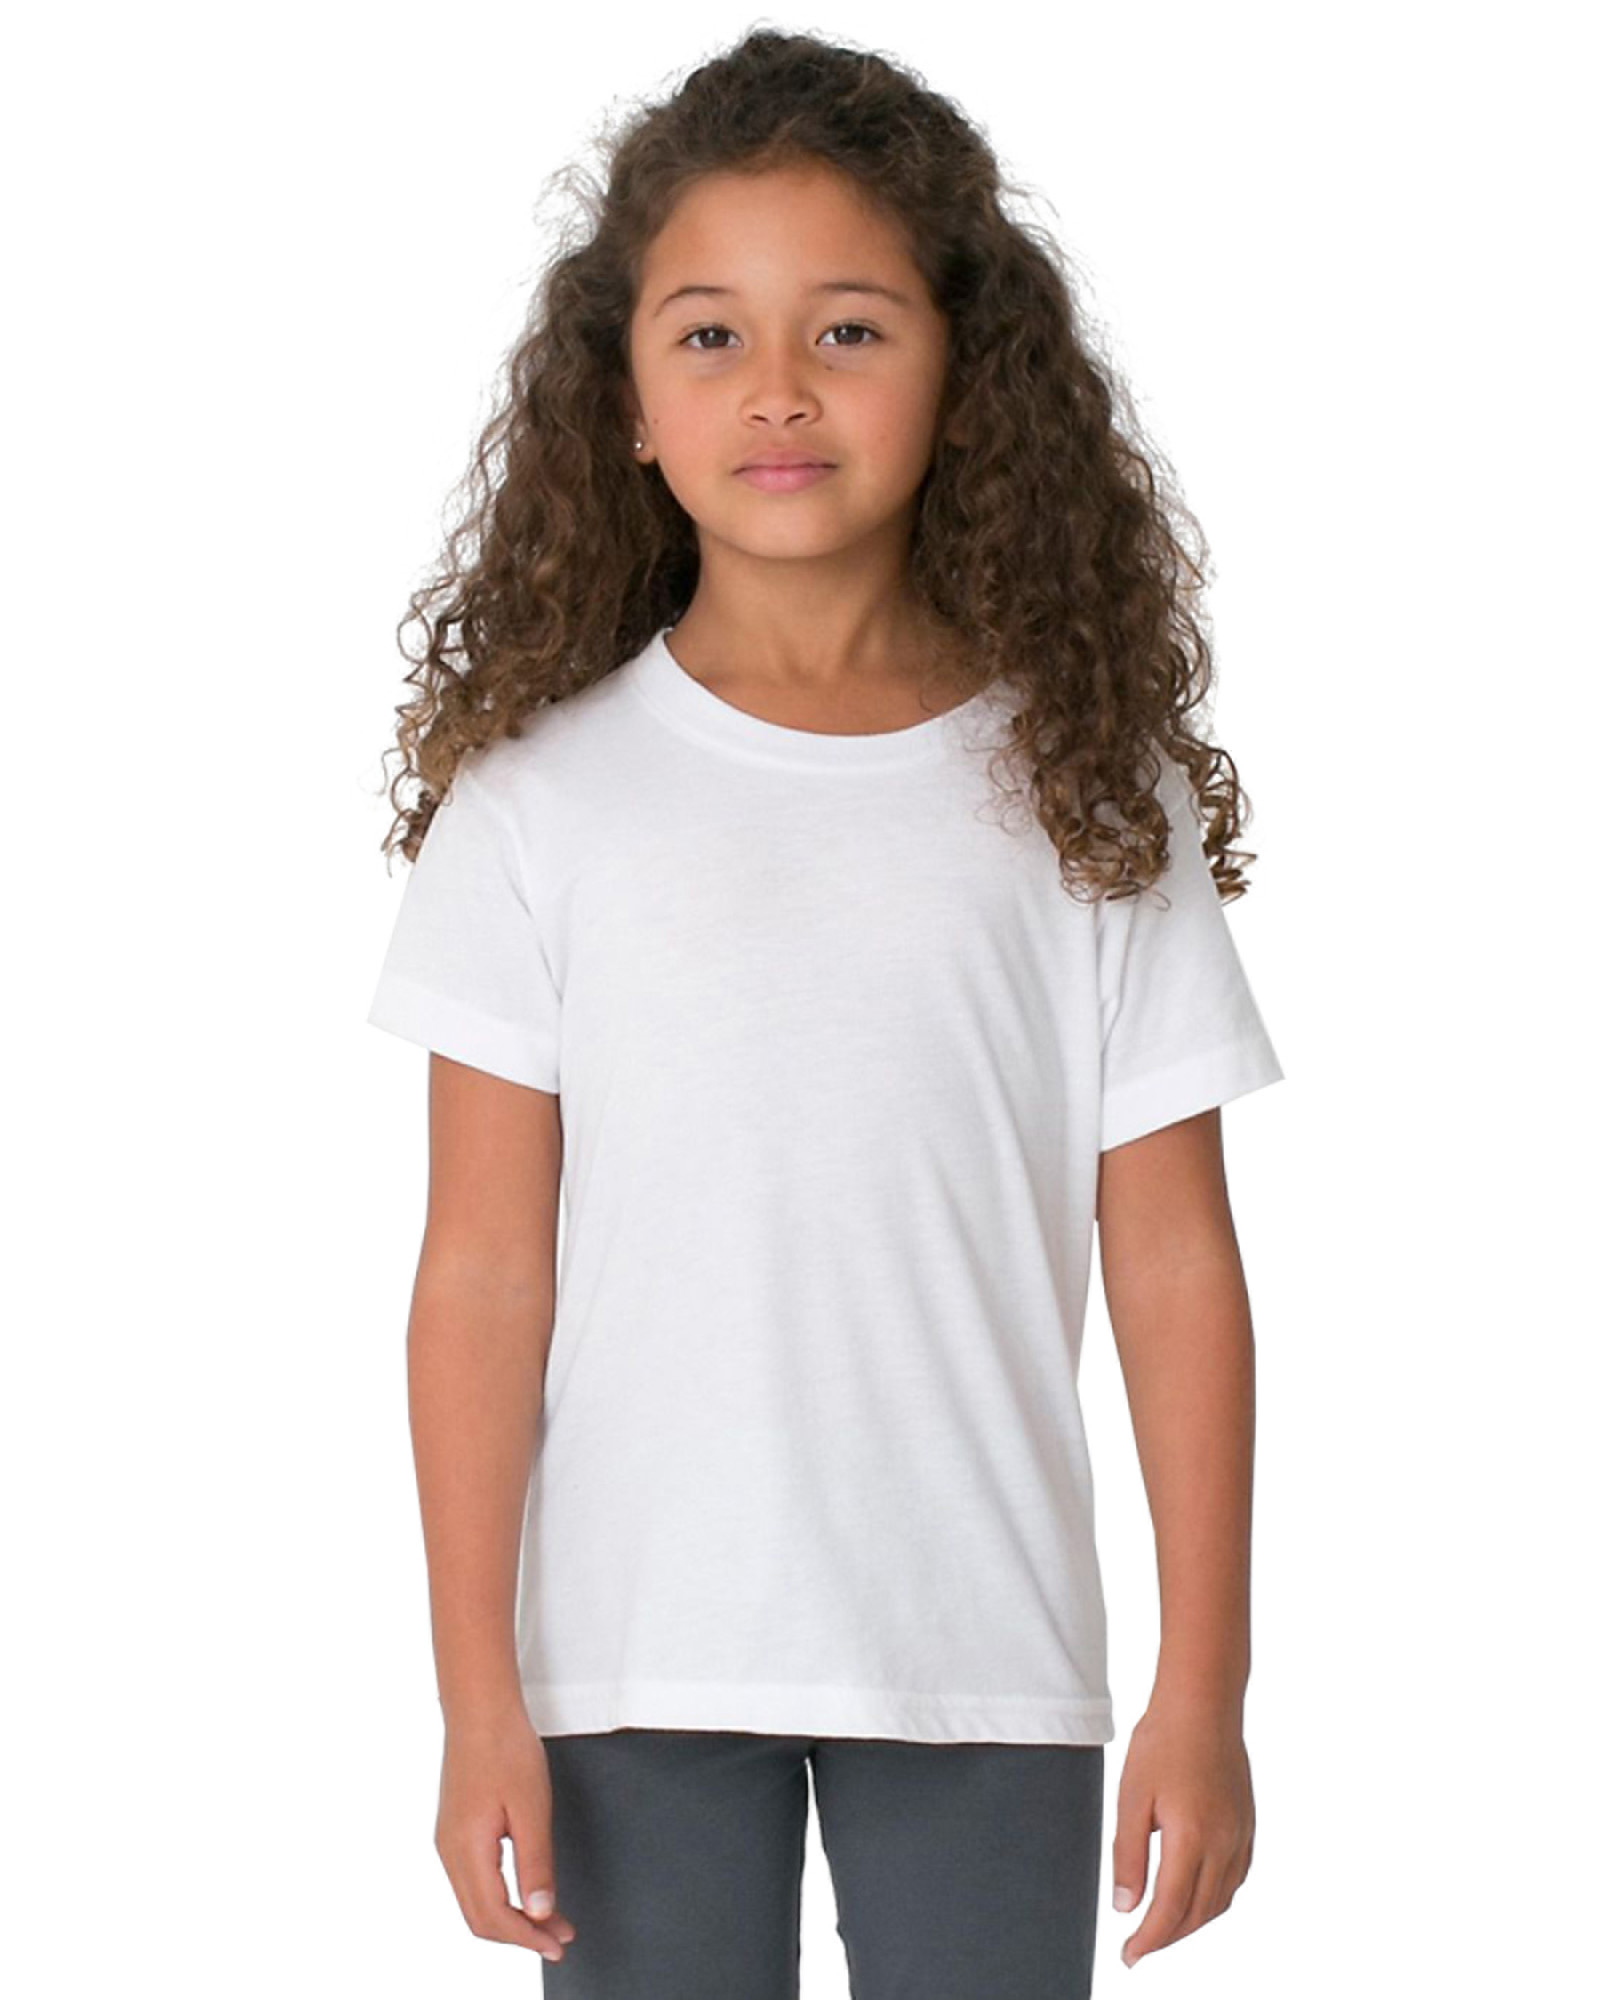 American Apparel 2105 Toddler Fine Jersey Short Sleeve T